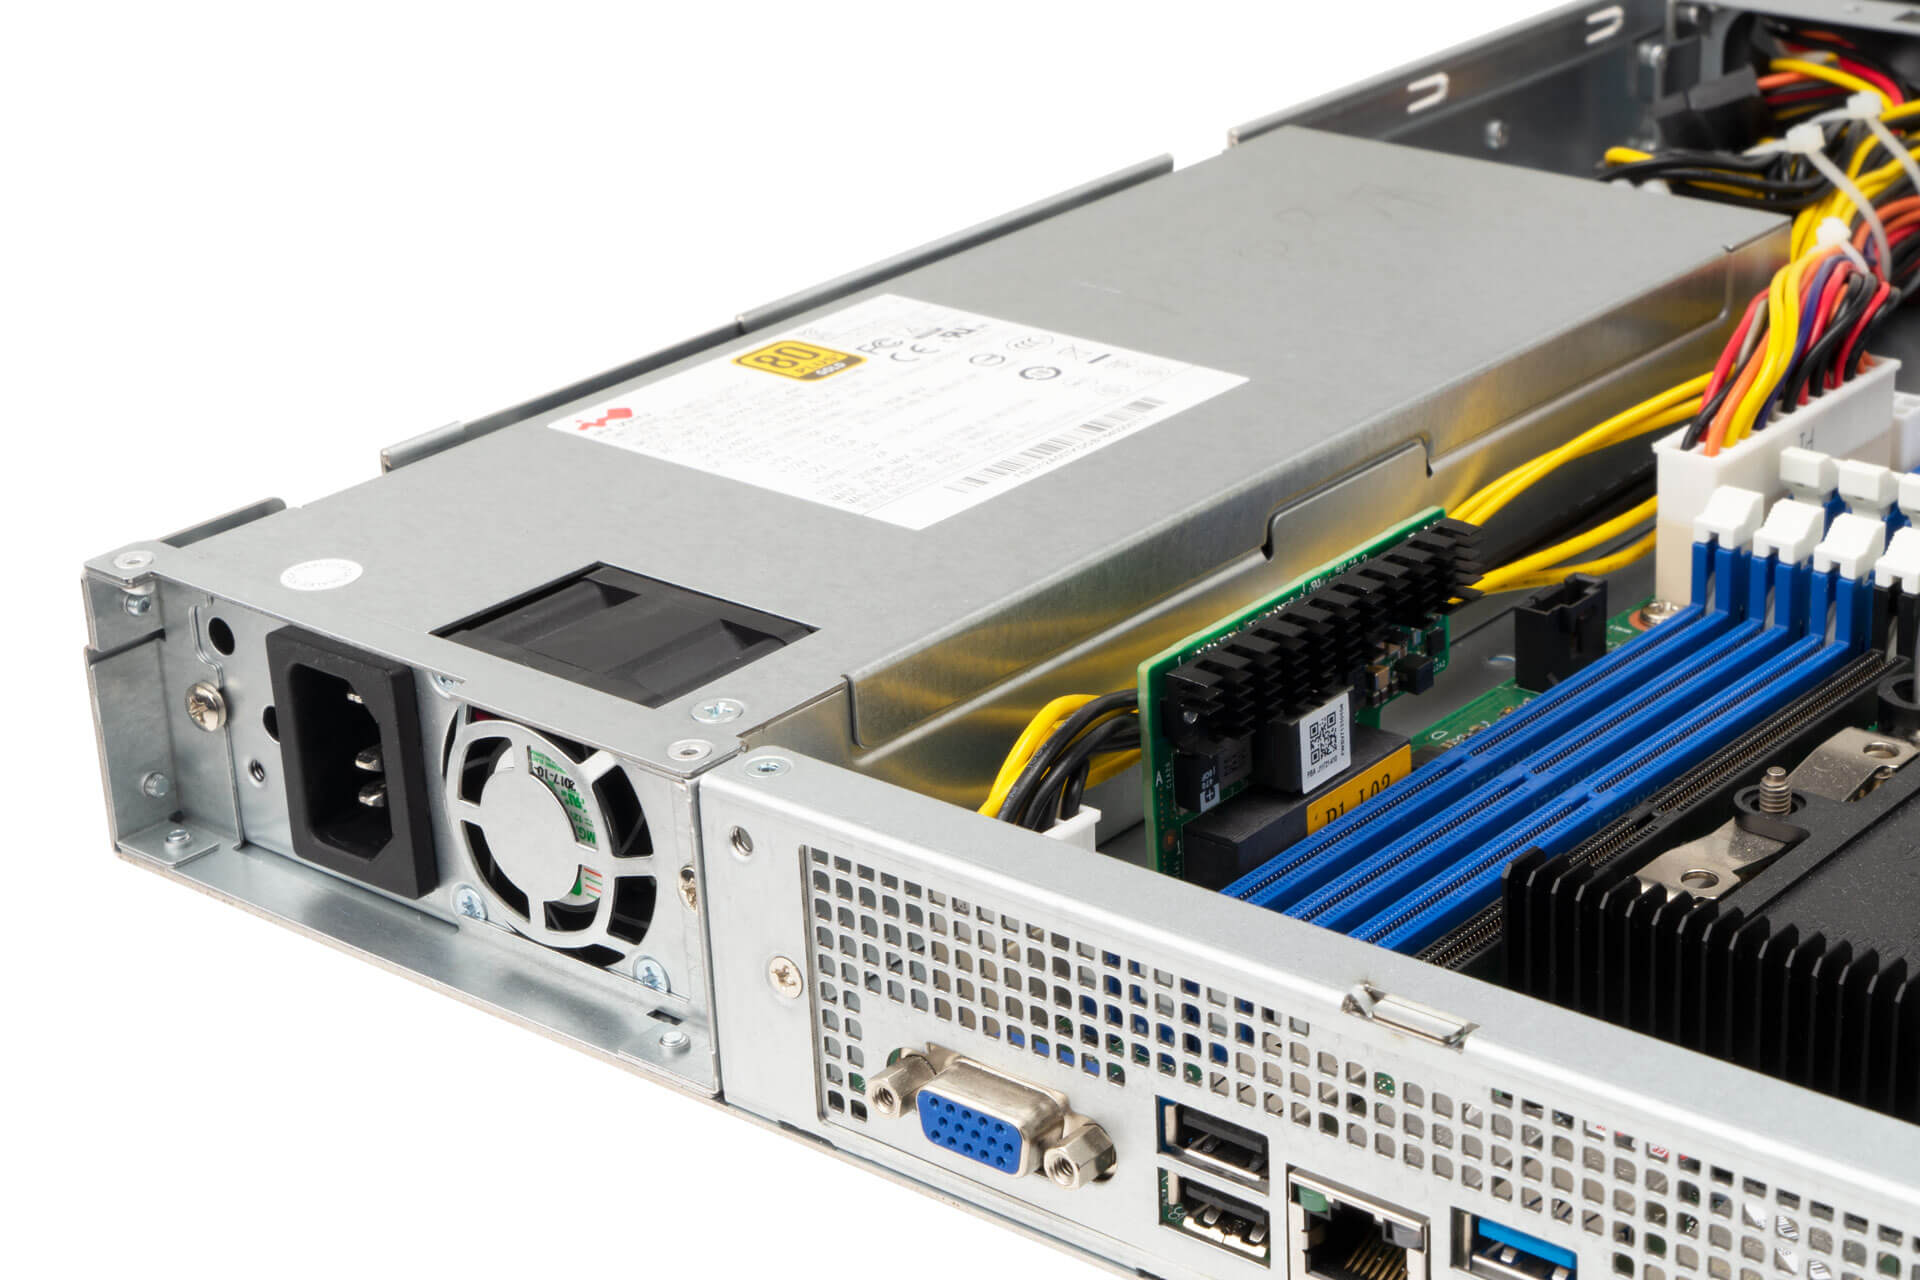 IW-RS110-07 - server system assembly